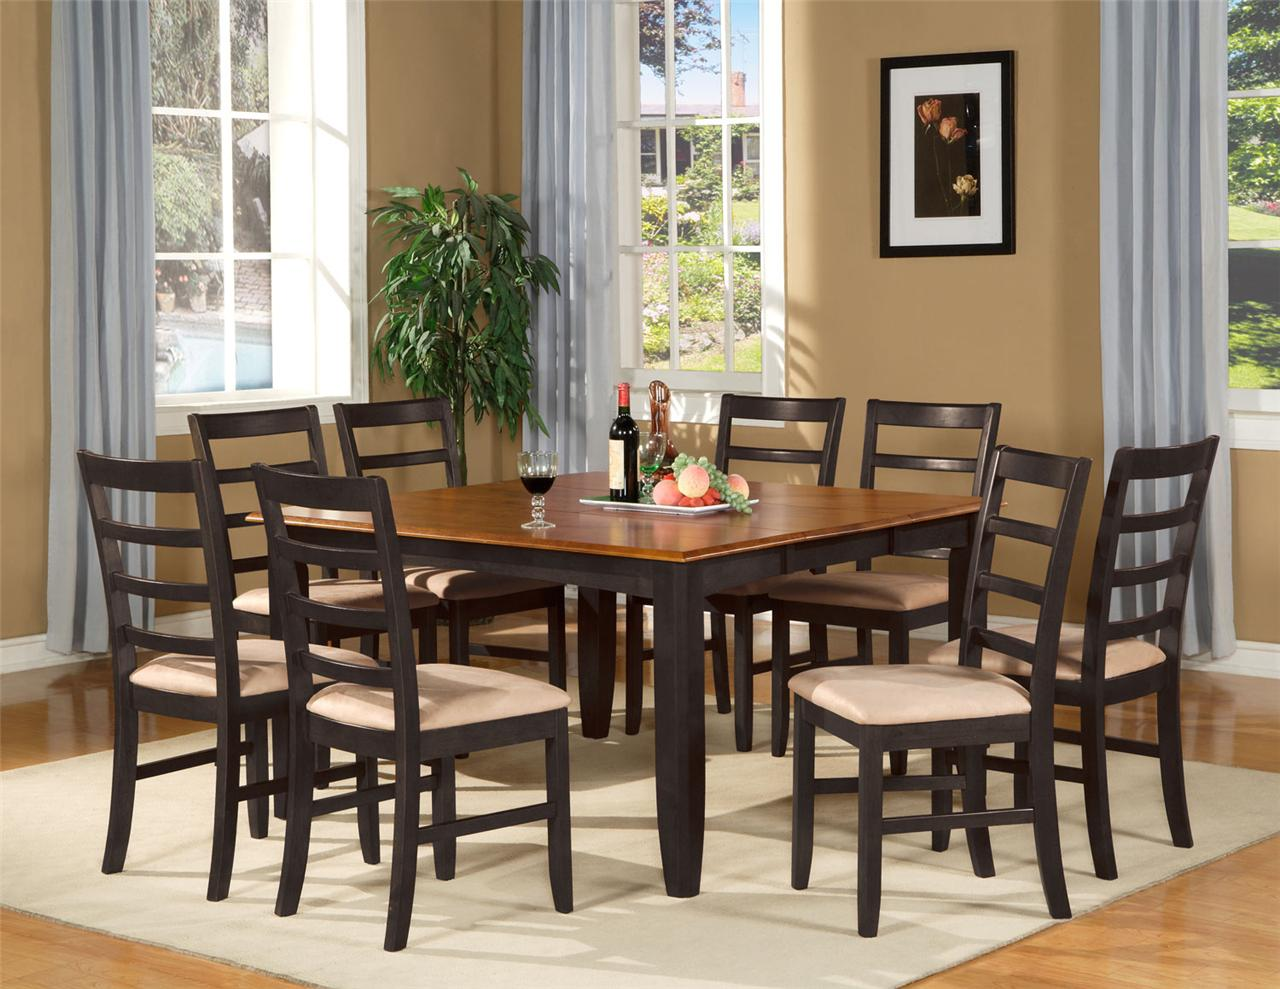 7 pc square dinette kitchen dining table set 6 chairs ebay for Dining room table for 4